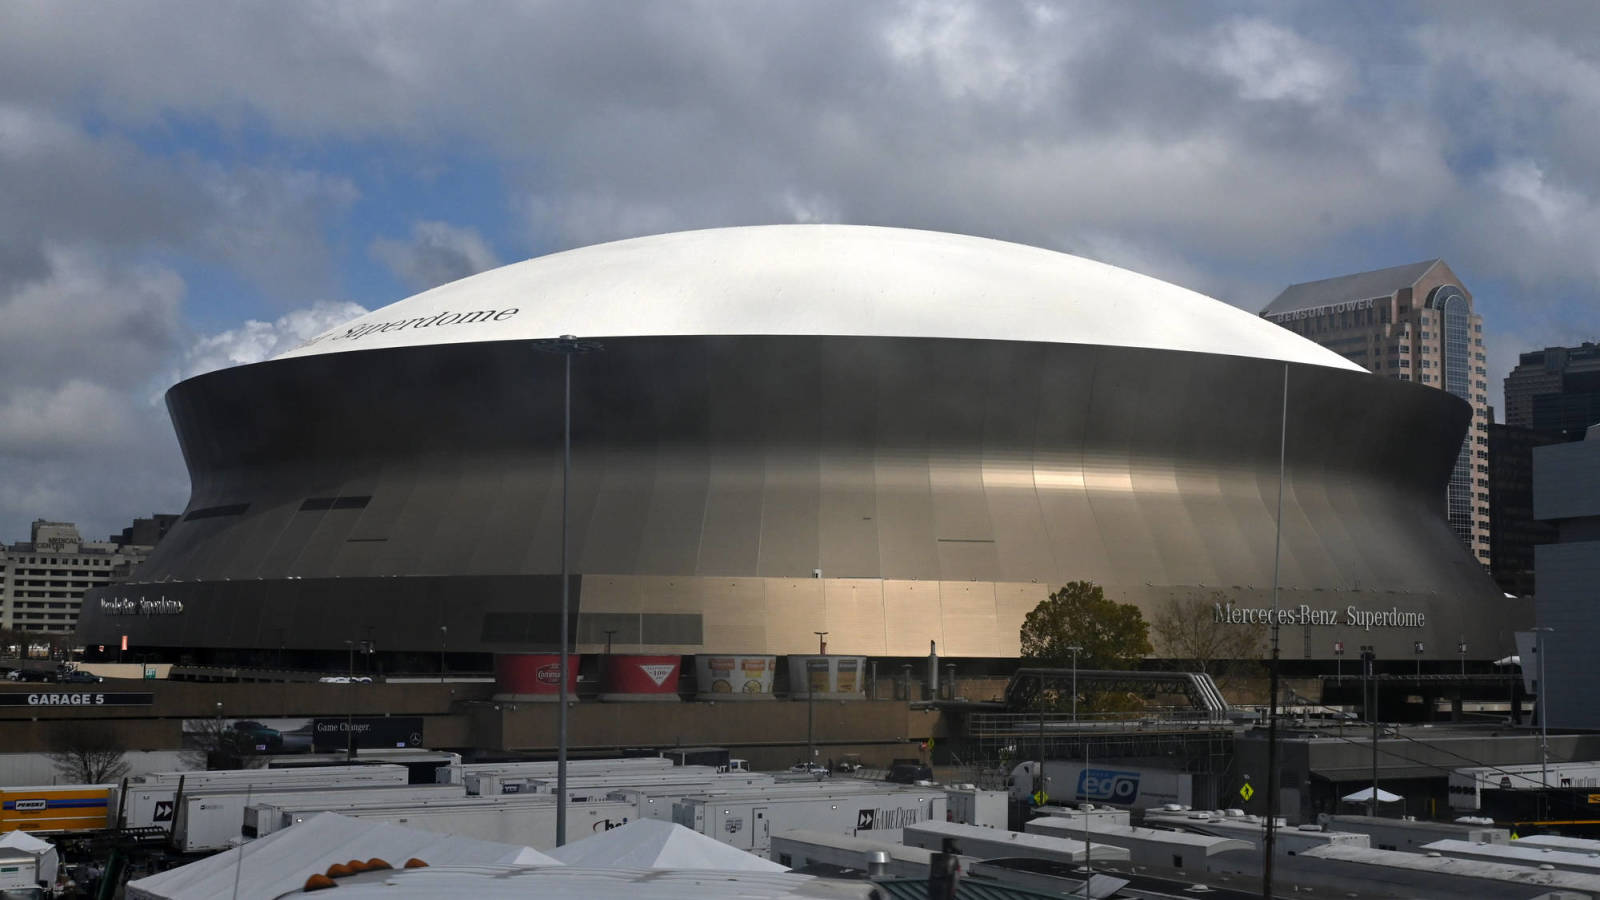 New Orleans Saints cleared to welcome fans to Mercedes-Benz Superdome